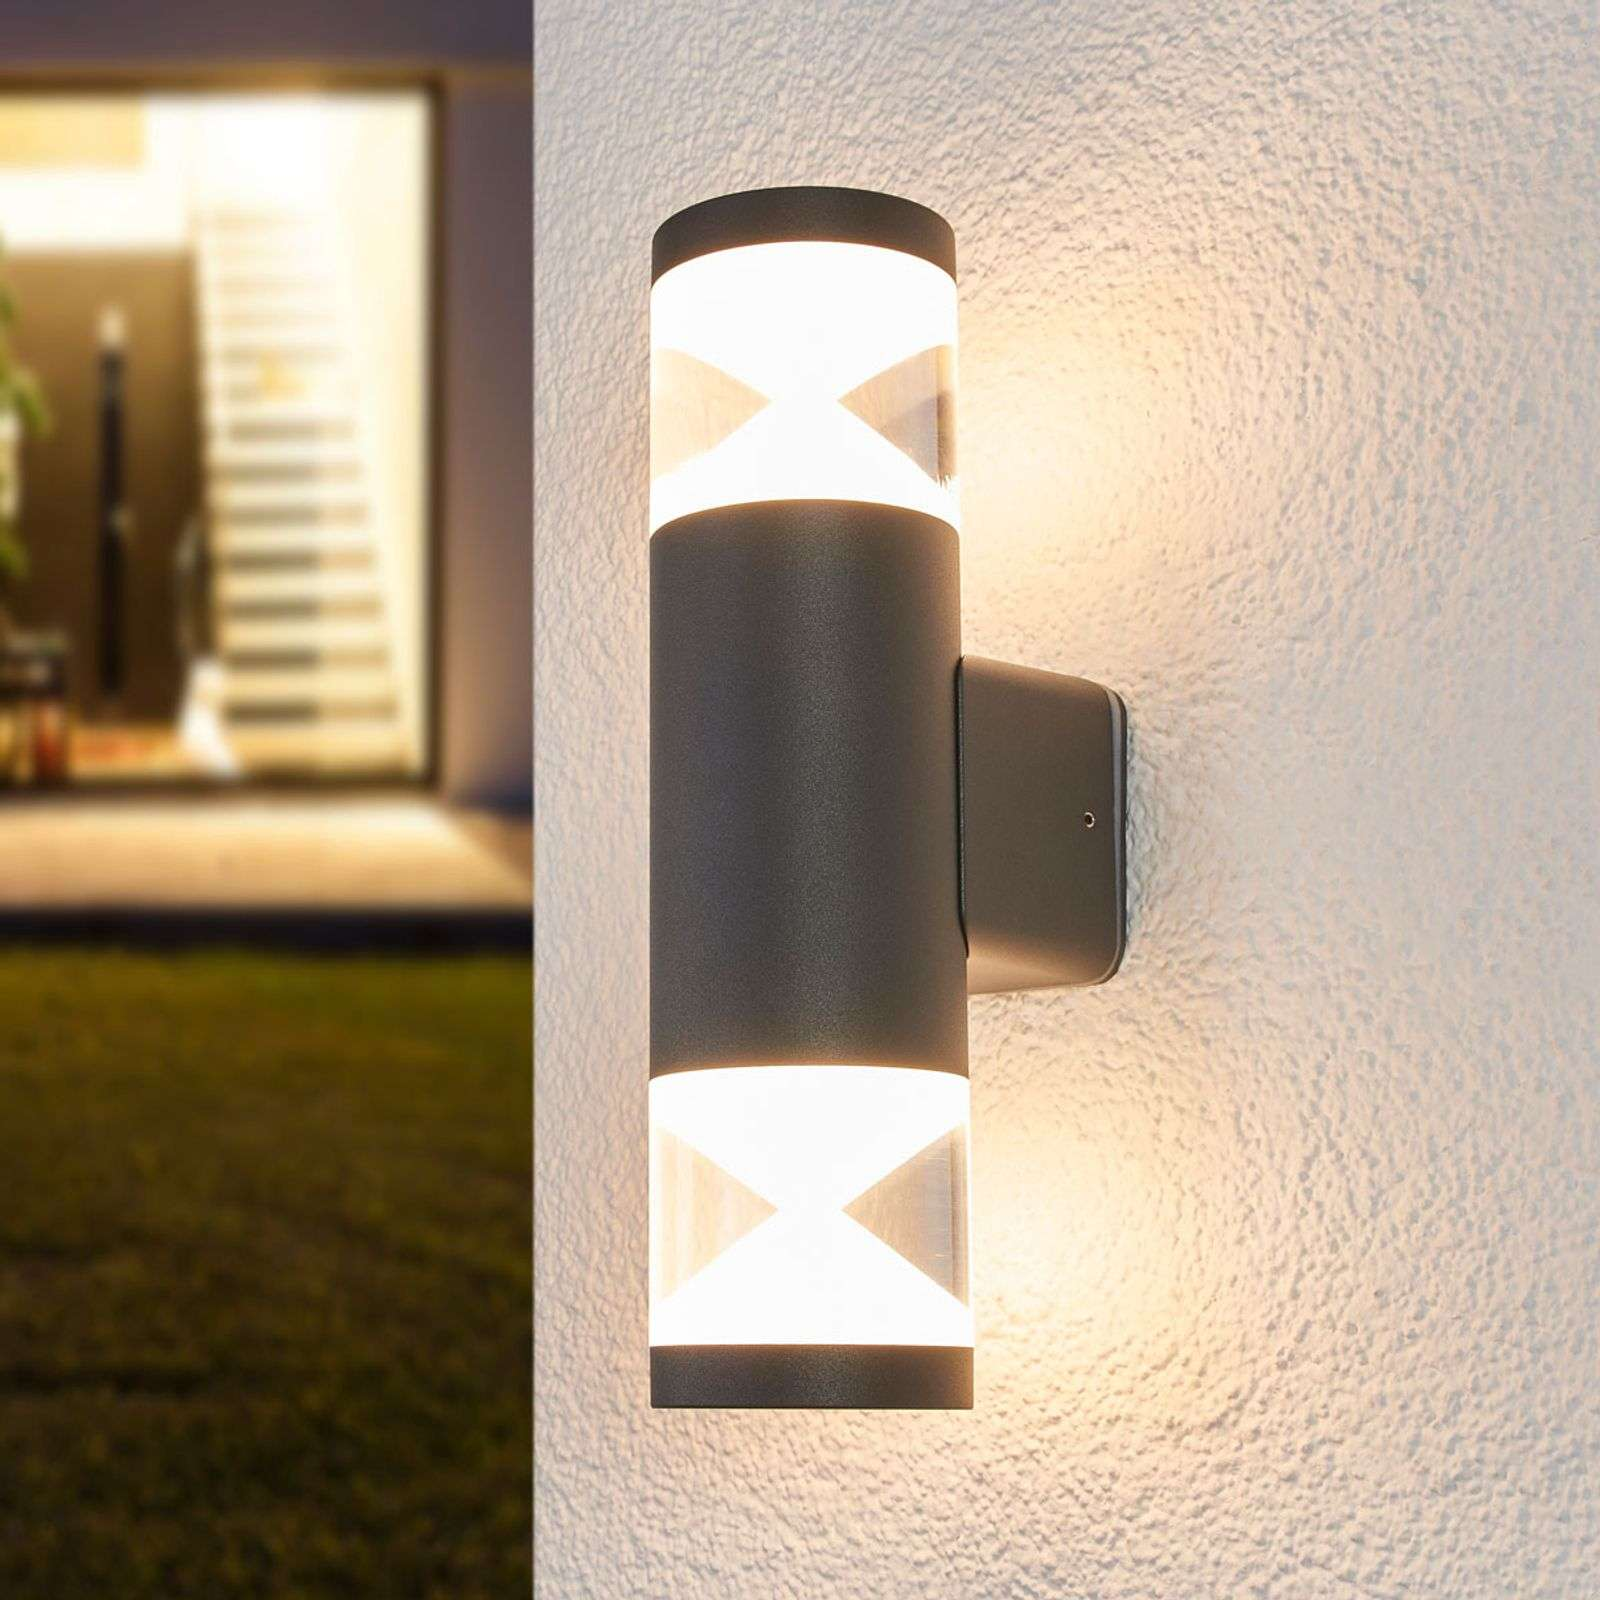 Tamiel - applique LED da esterni in grigio scuro